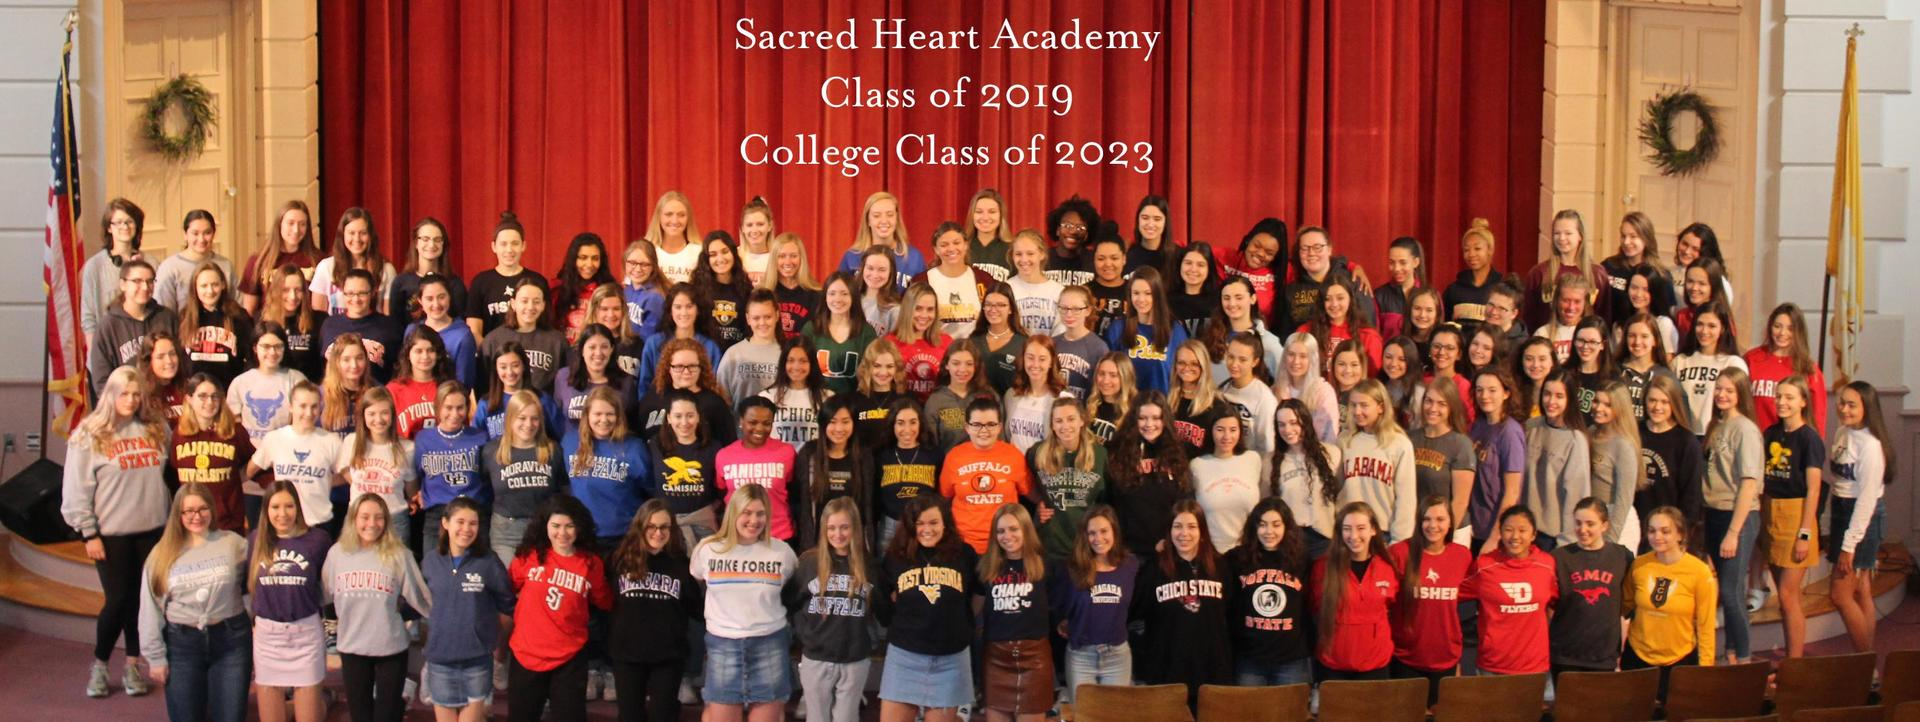 Decision Day 2019